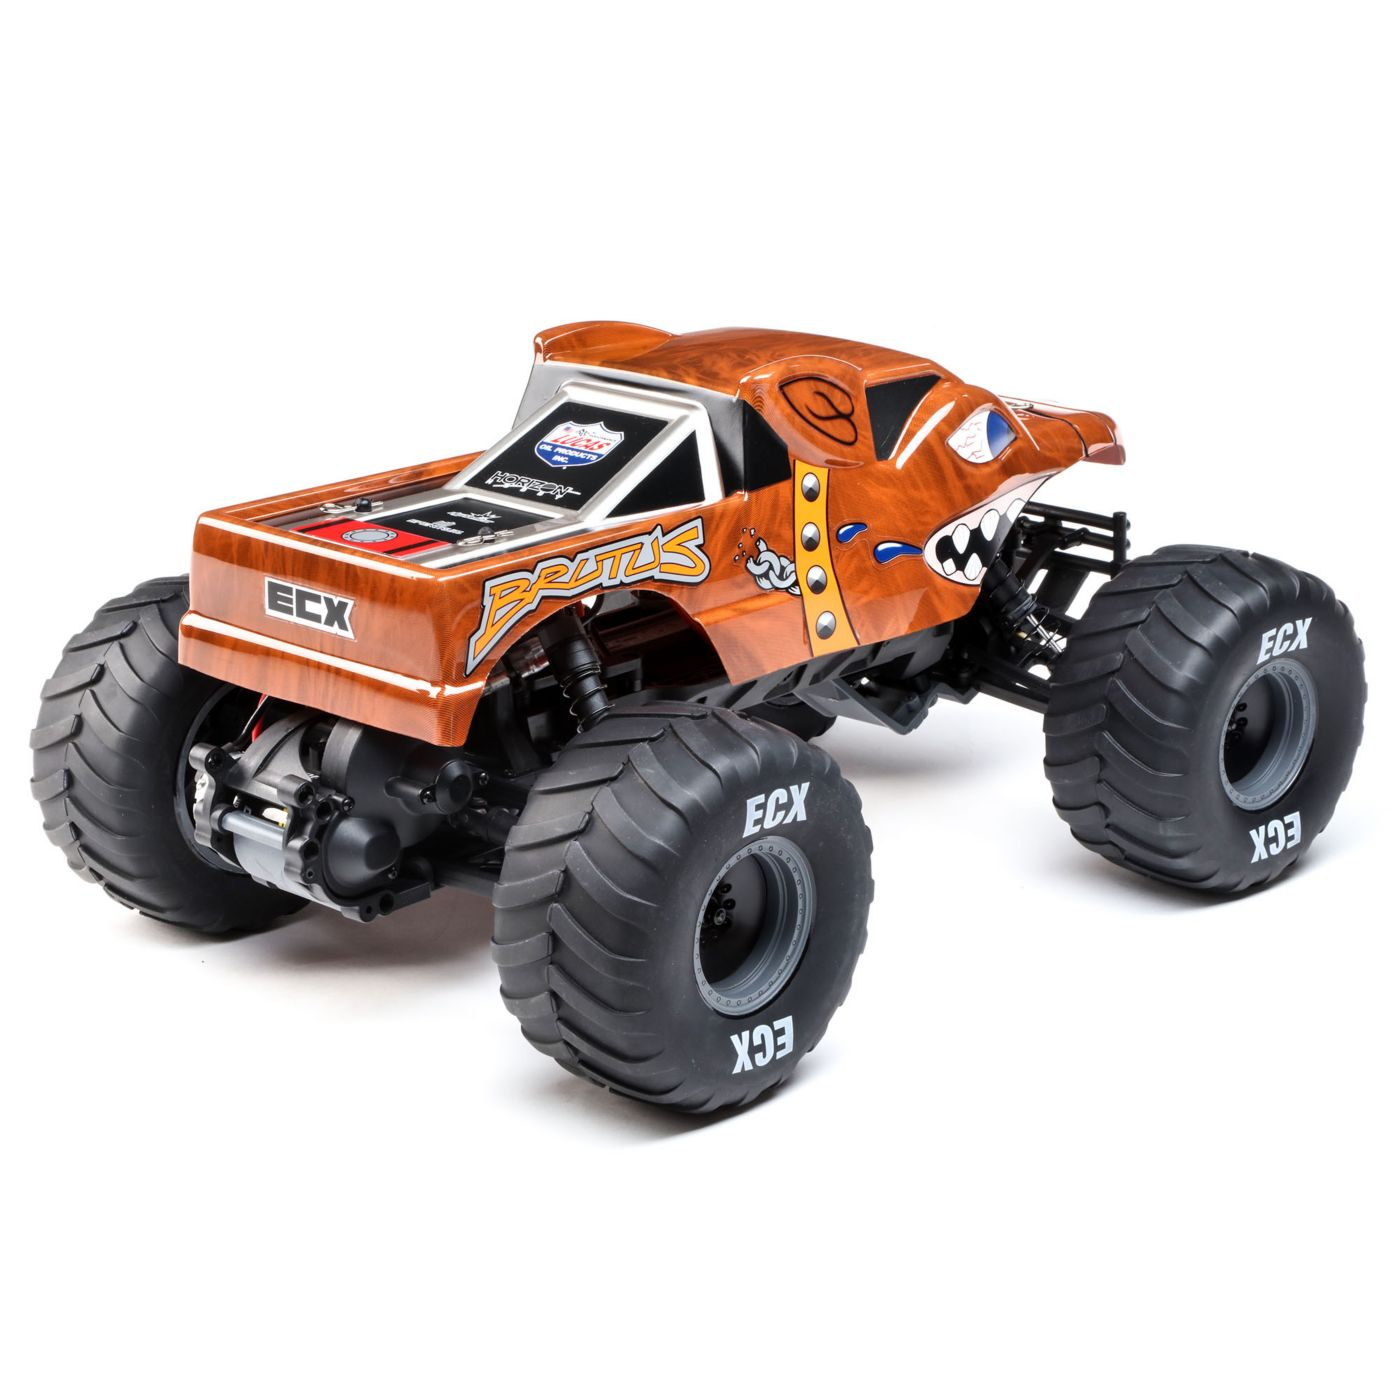 ECX Brutus 2WD Monster Truck - Rear